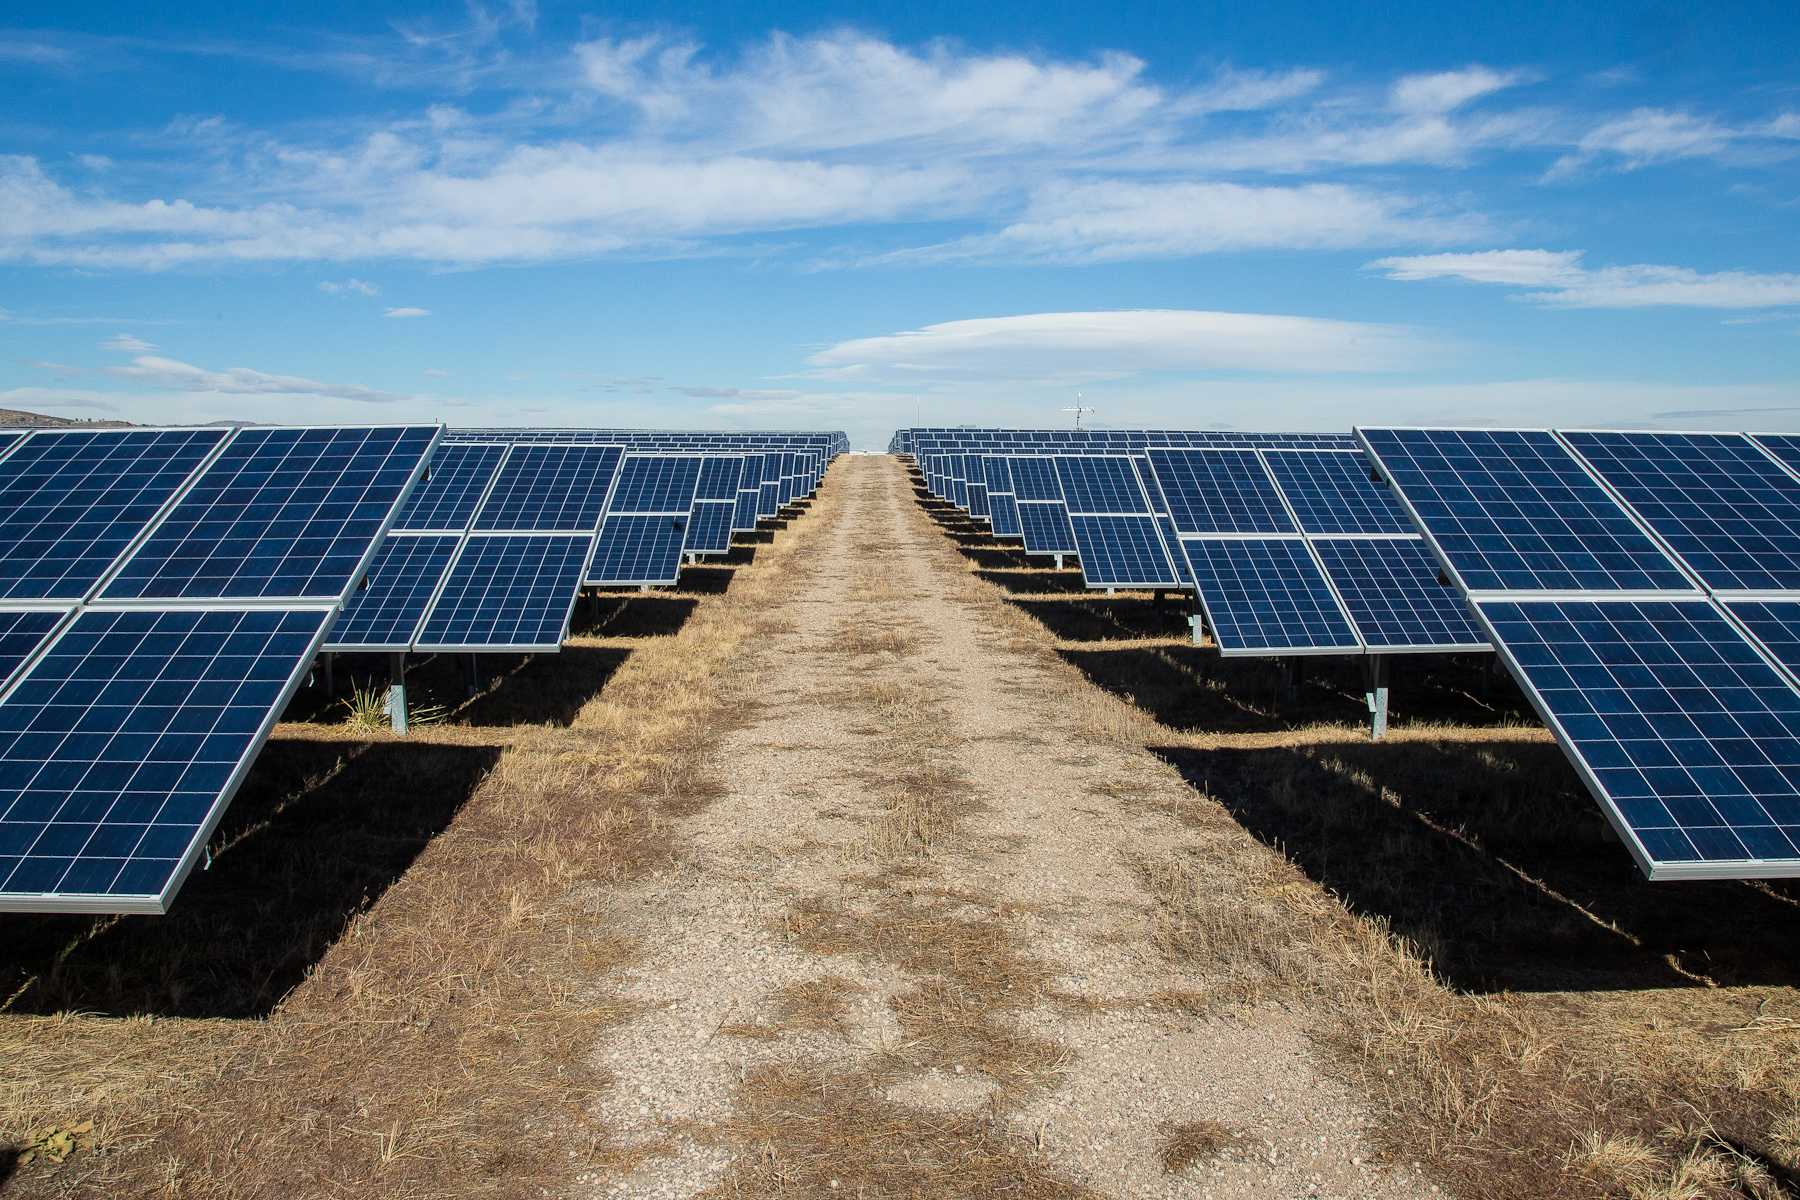 The Colorado State University Solar Plant, located off of Laporte Ave. and Overland Trail, sits on 30 acres of land and harvests enough energy to power the CSU Foothills Campus.